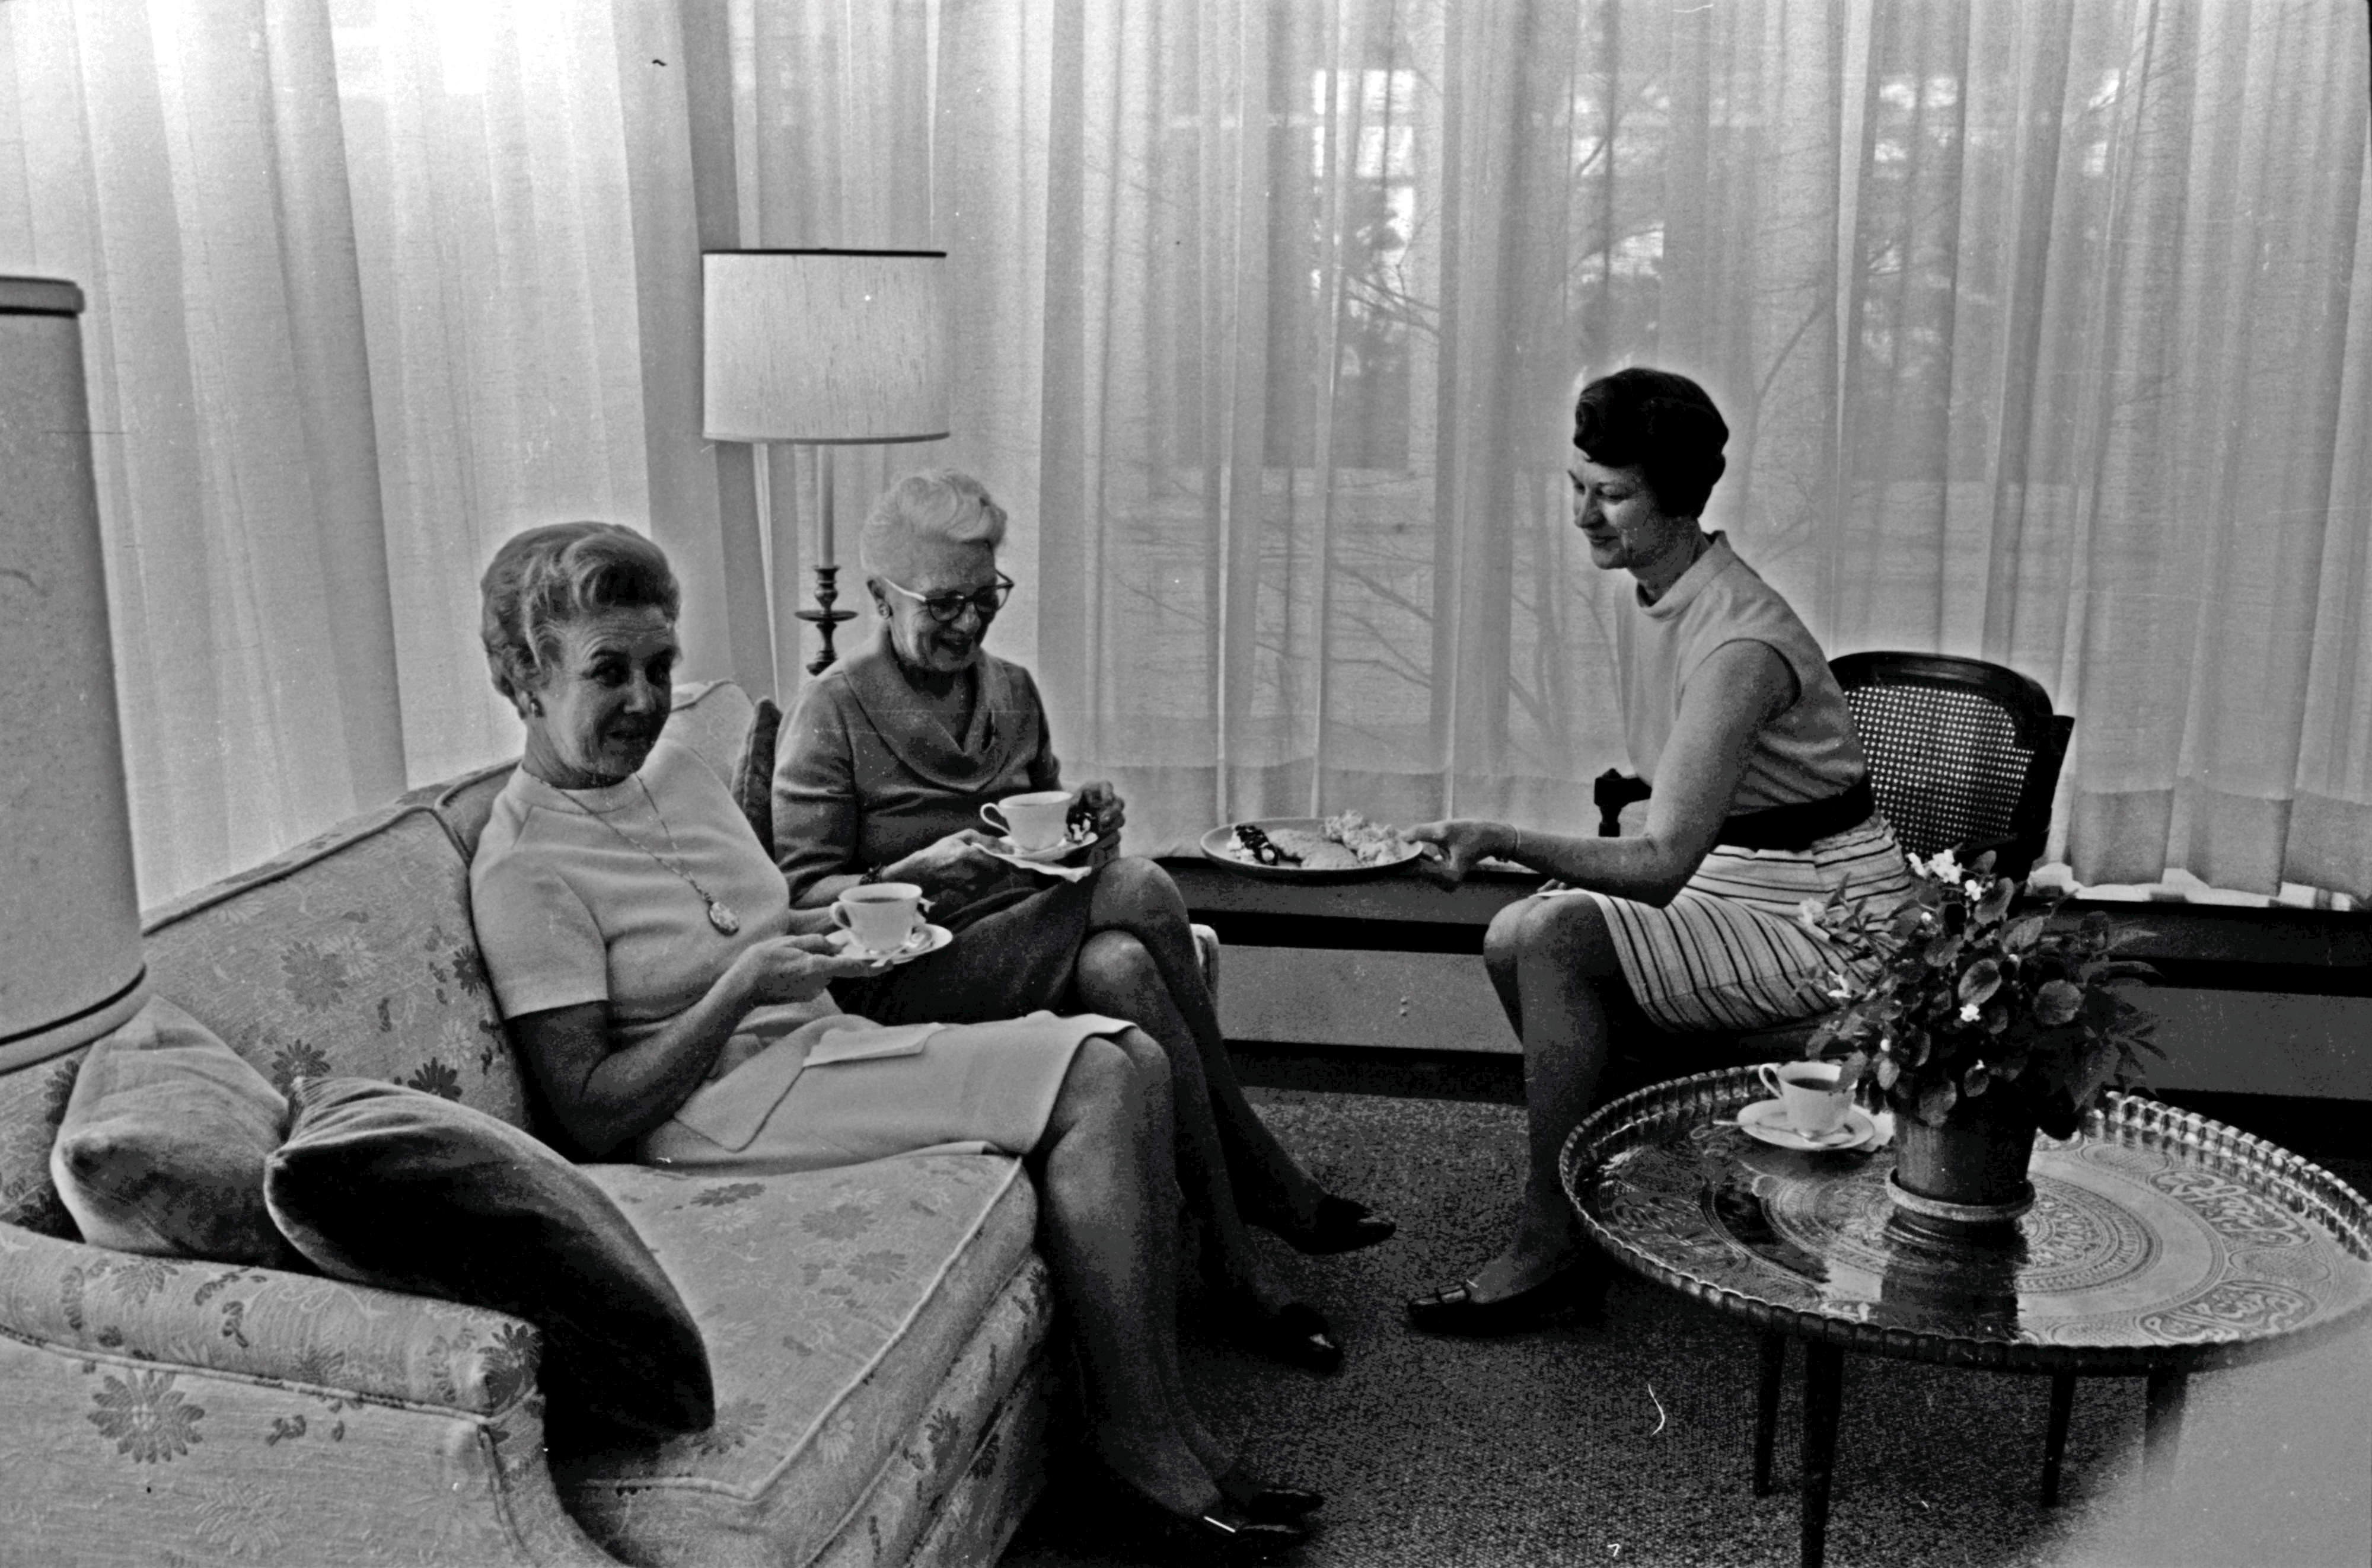 University of Michigan Faculty Women's Club Meets for Tea, March 1970 image